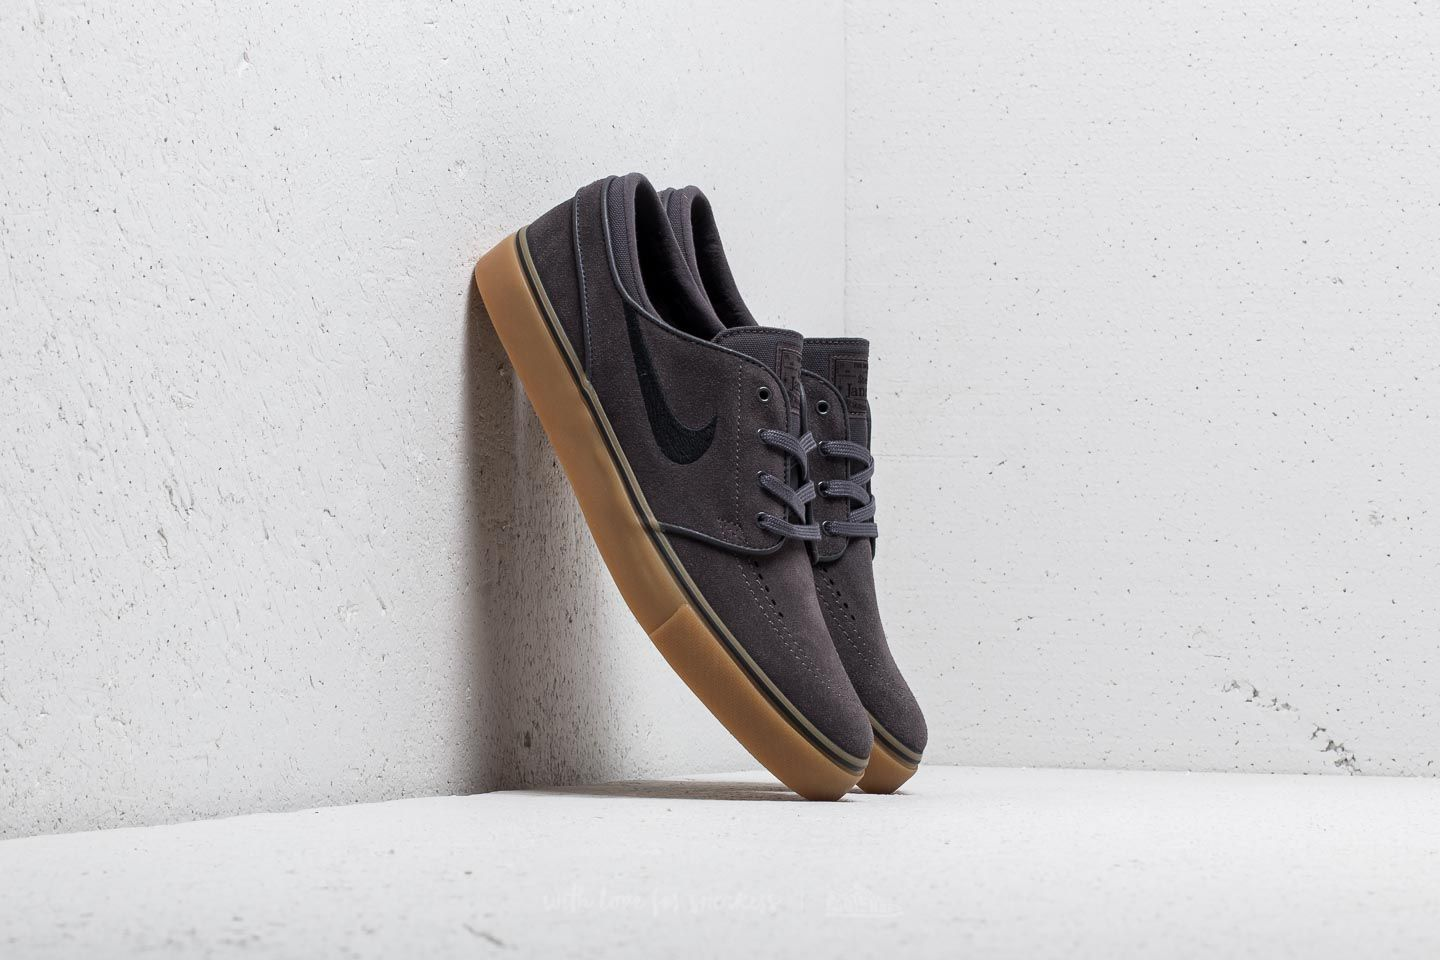 perjudicar Gigante Libro  Men's shoes Nike Zoom Stefan Janoski Thunder Grey/ Black | Footshop